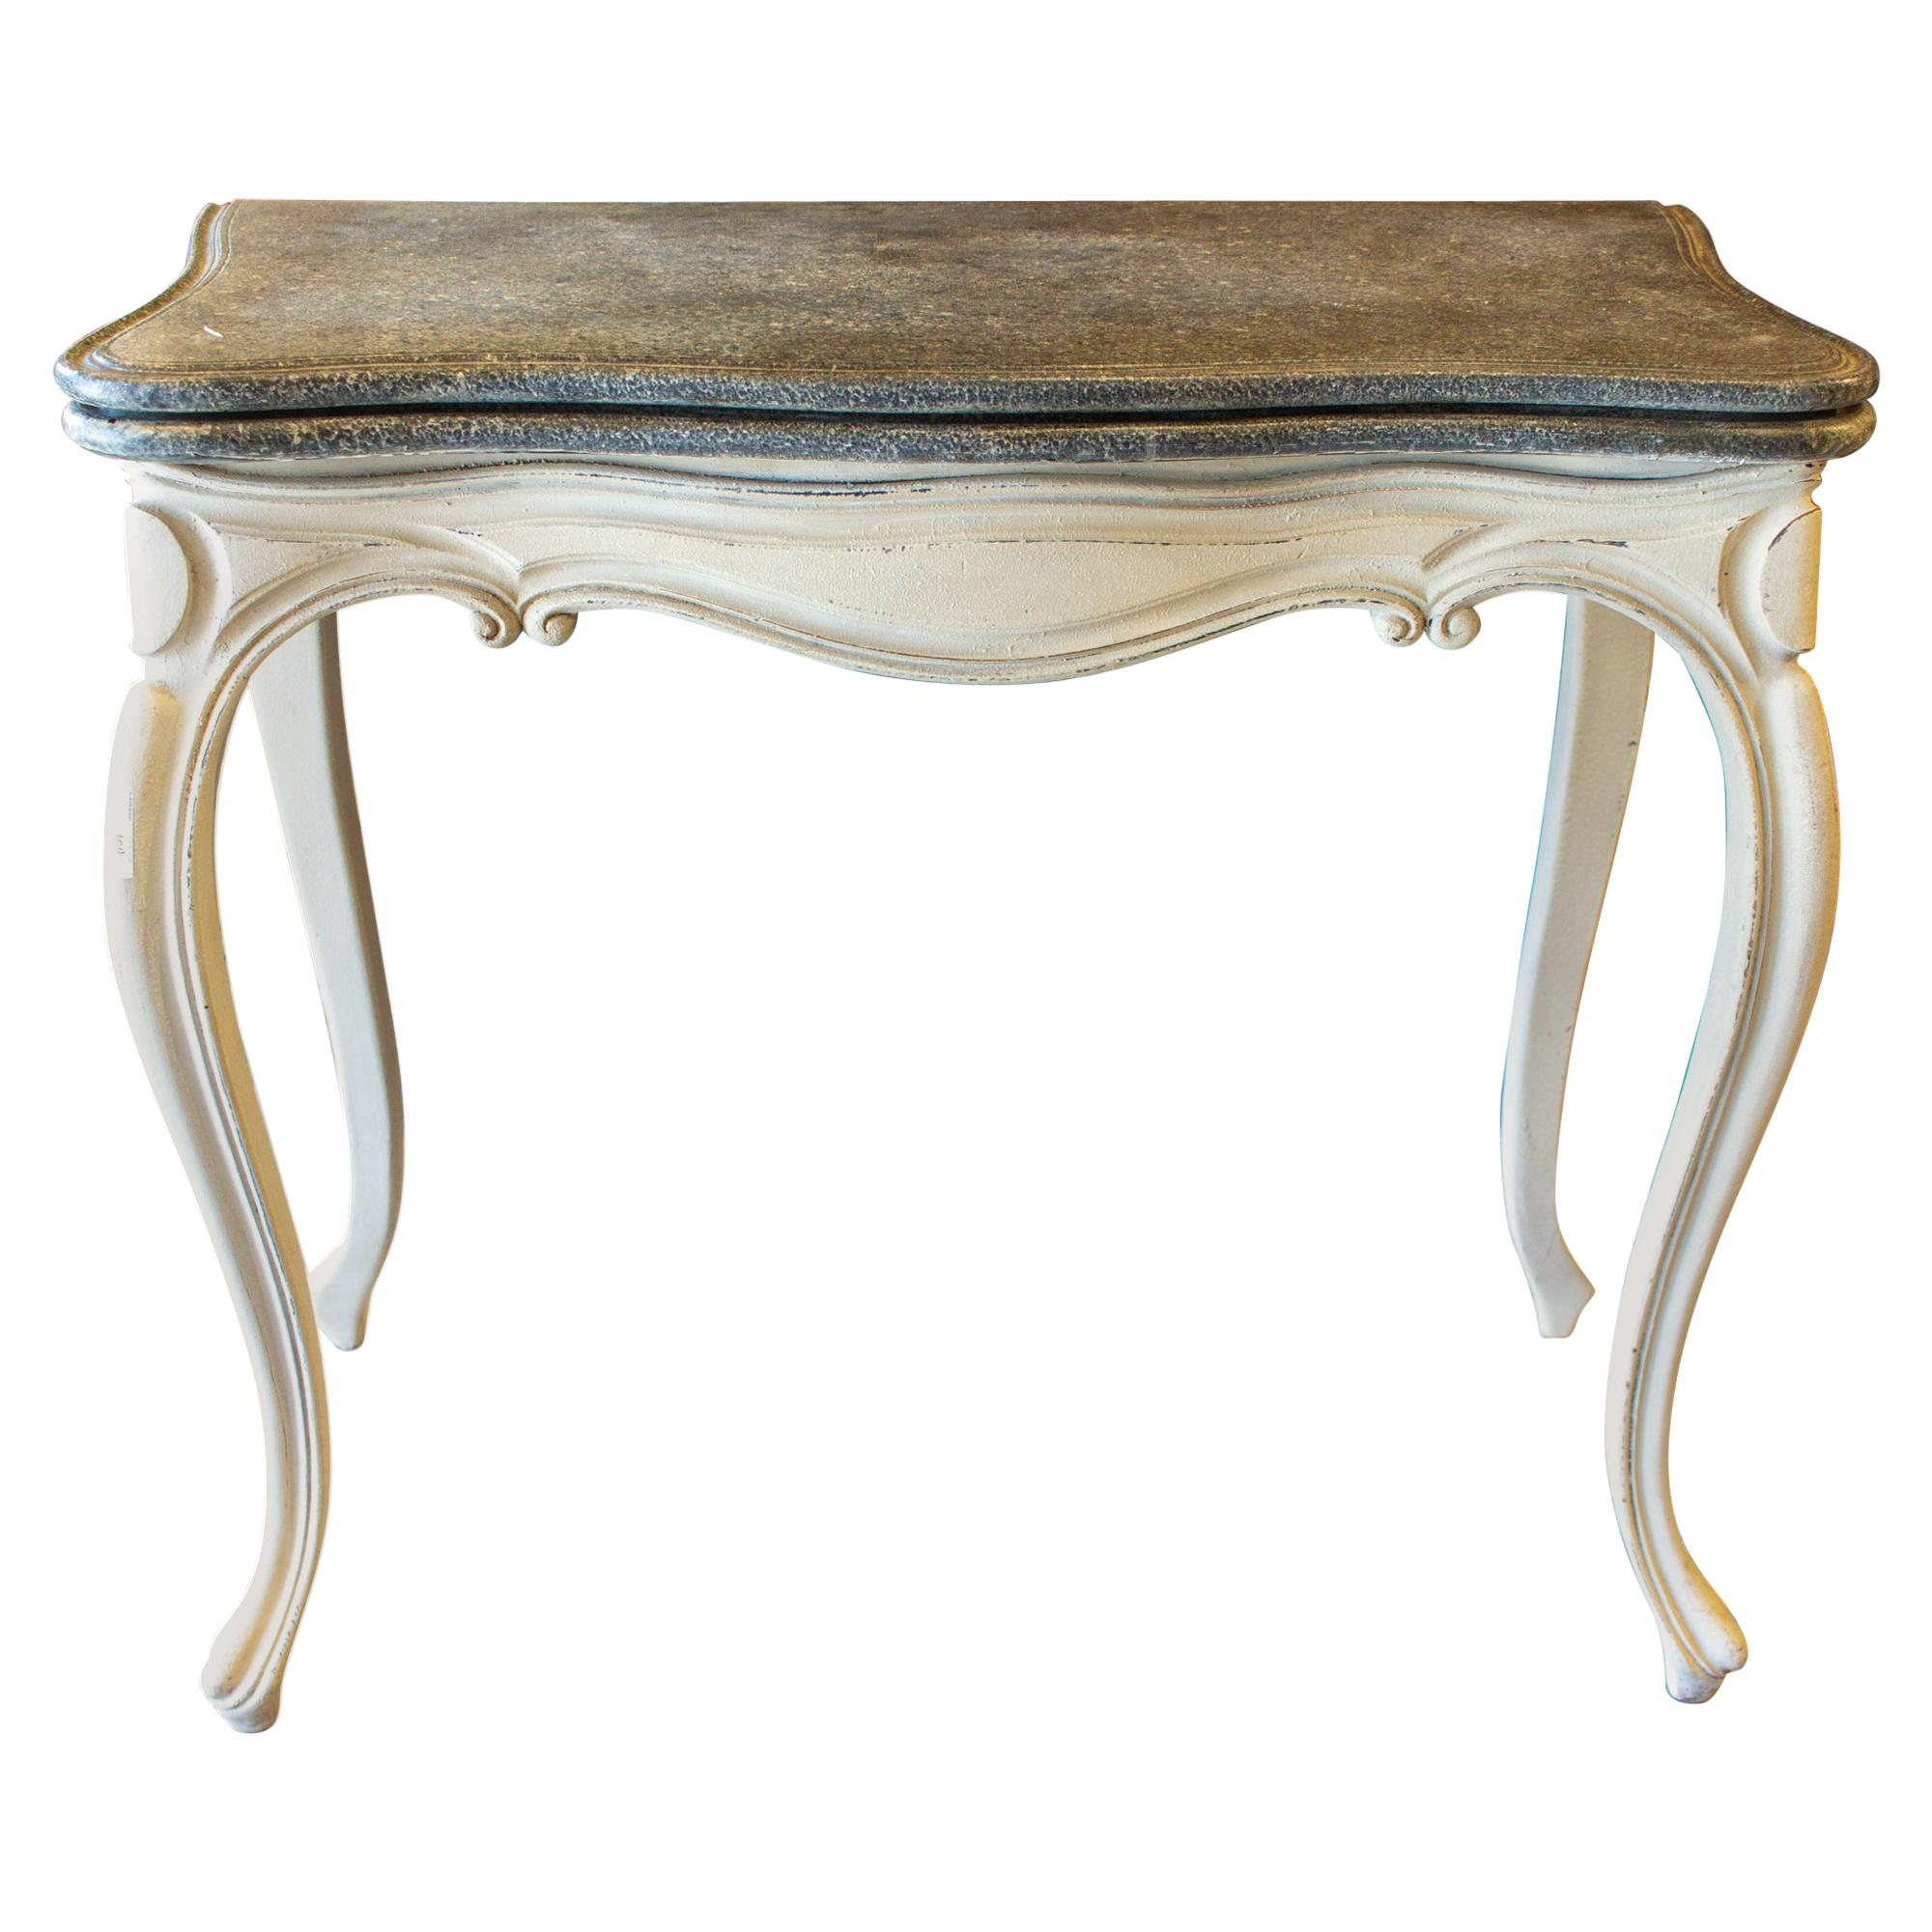 Antique French Console and Game Table with Embossed Leather Top & Painted Finish